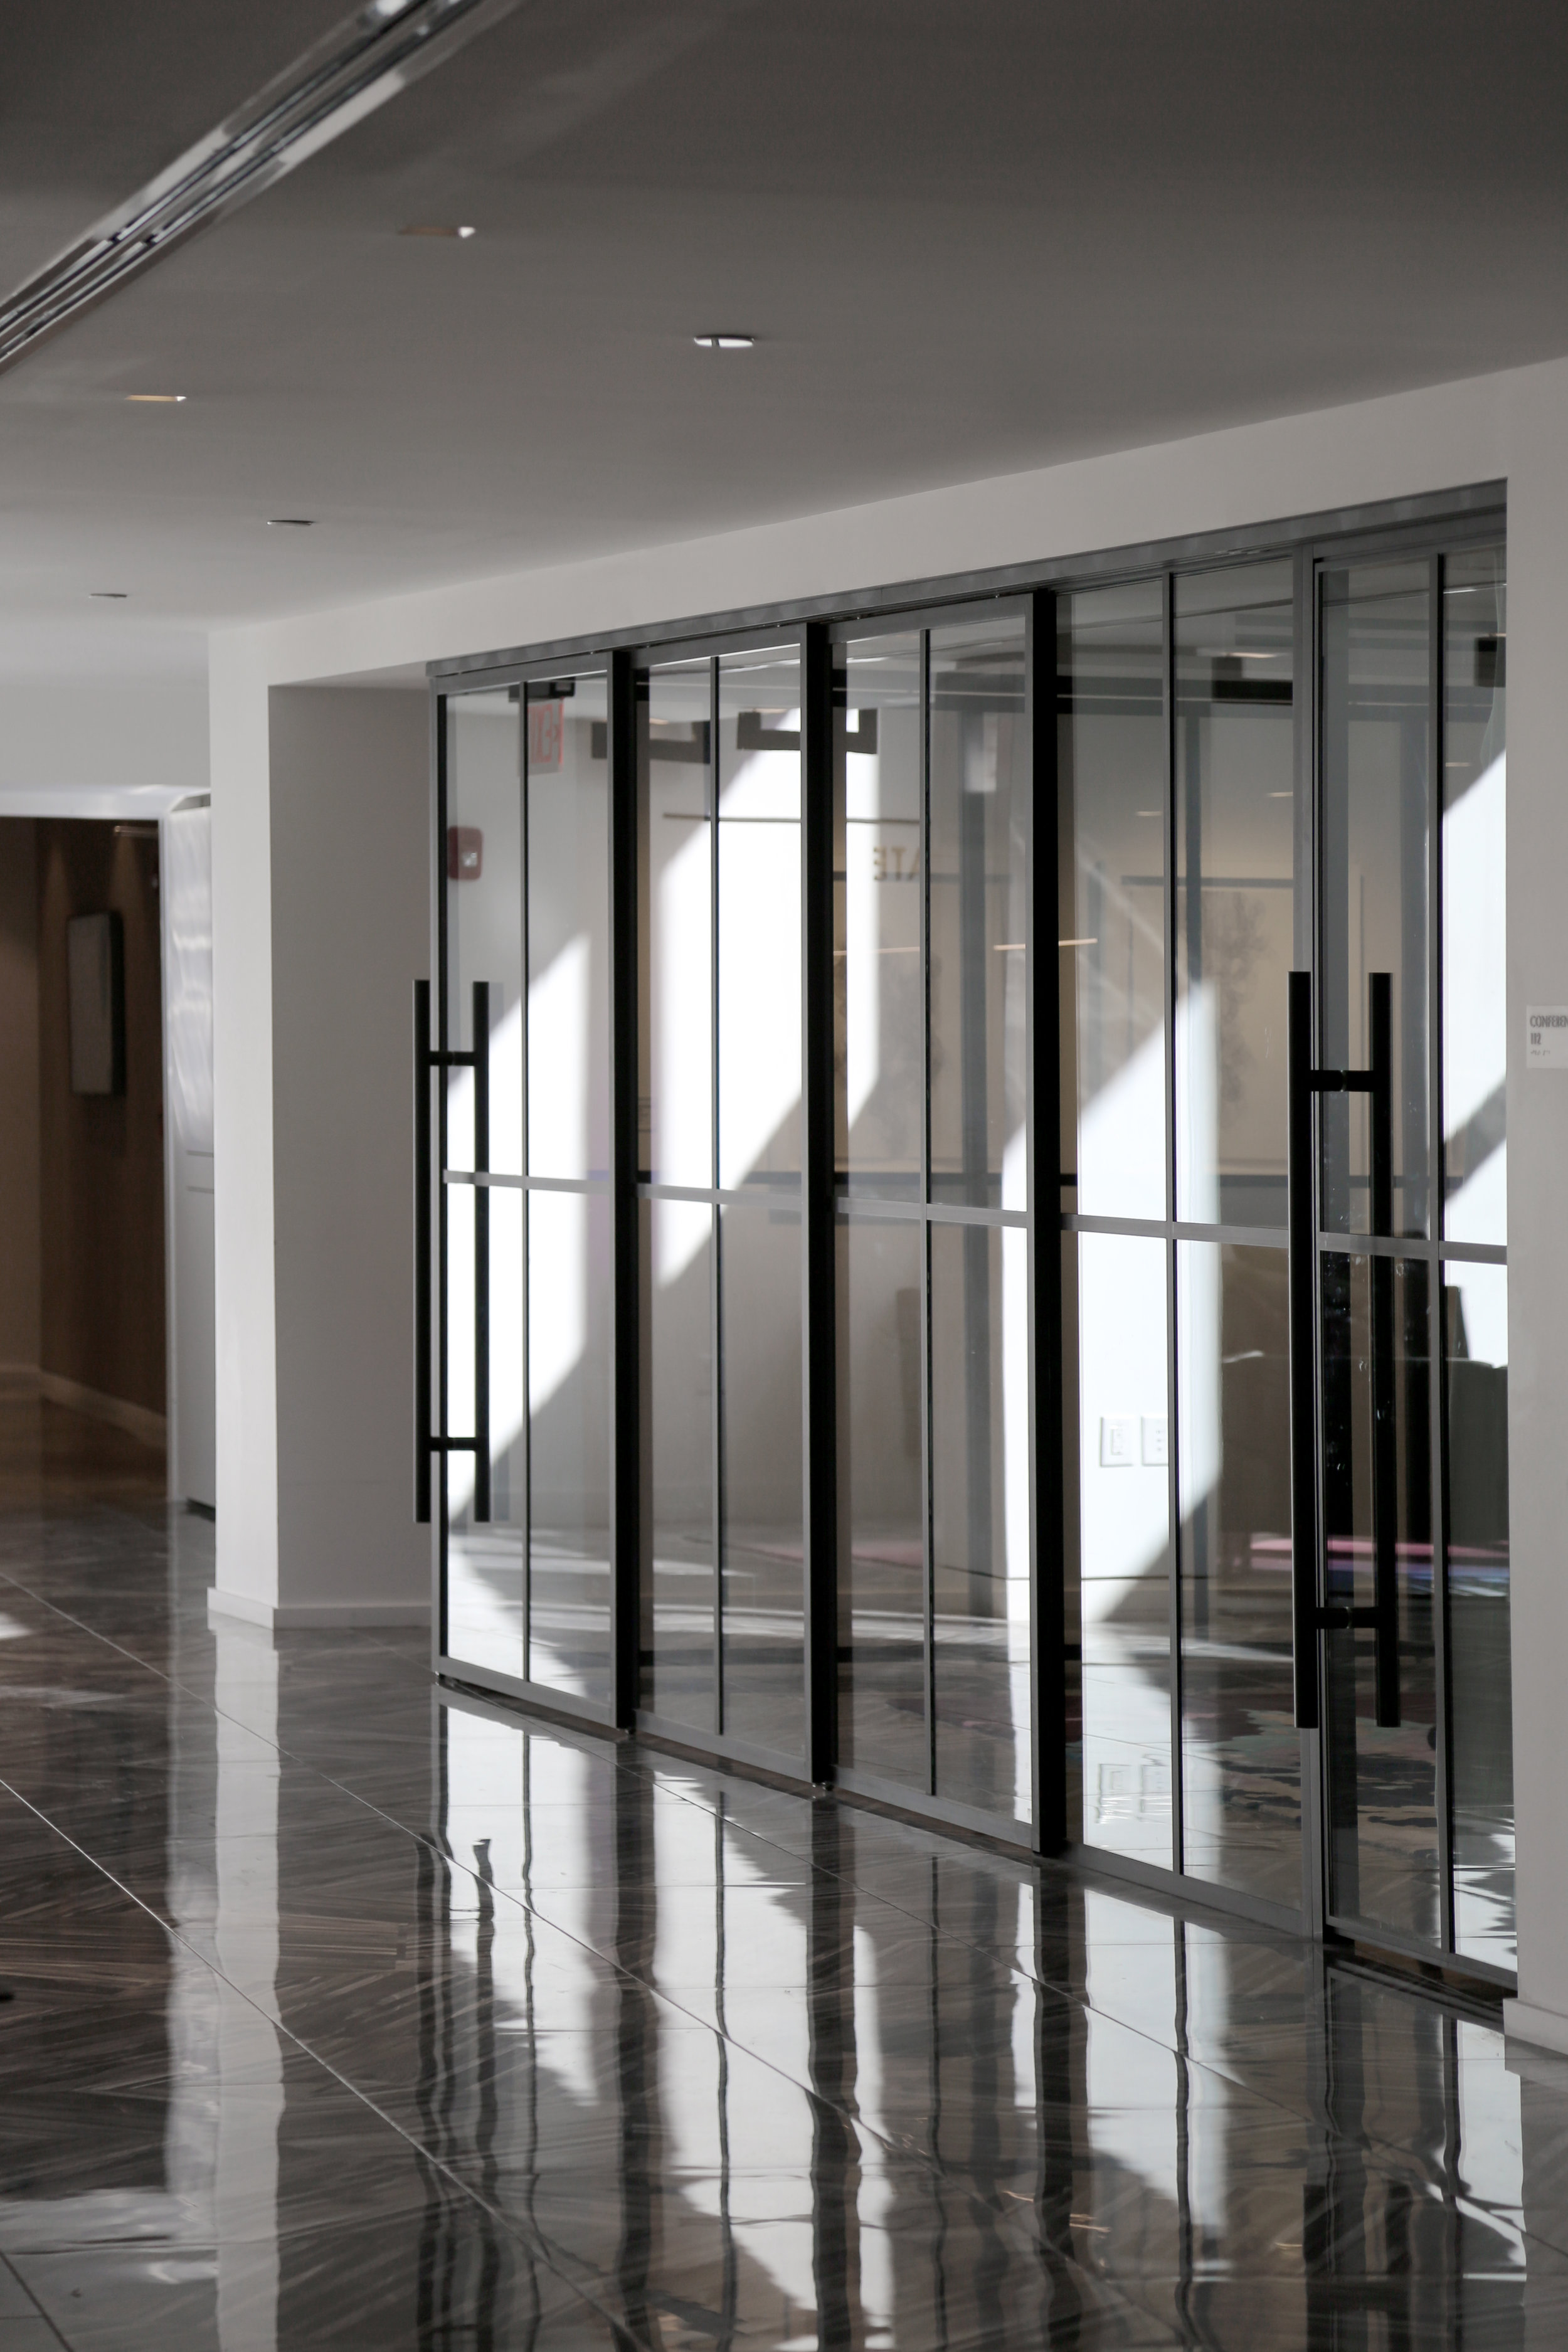 Telescoping Glass Panel Wall System Thin Profile Aluminum-Framed Doors - Spaceworks AI.jpg